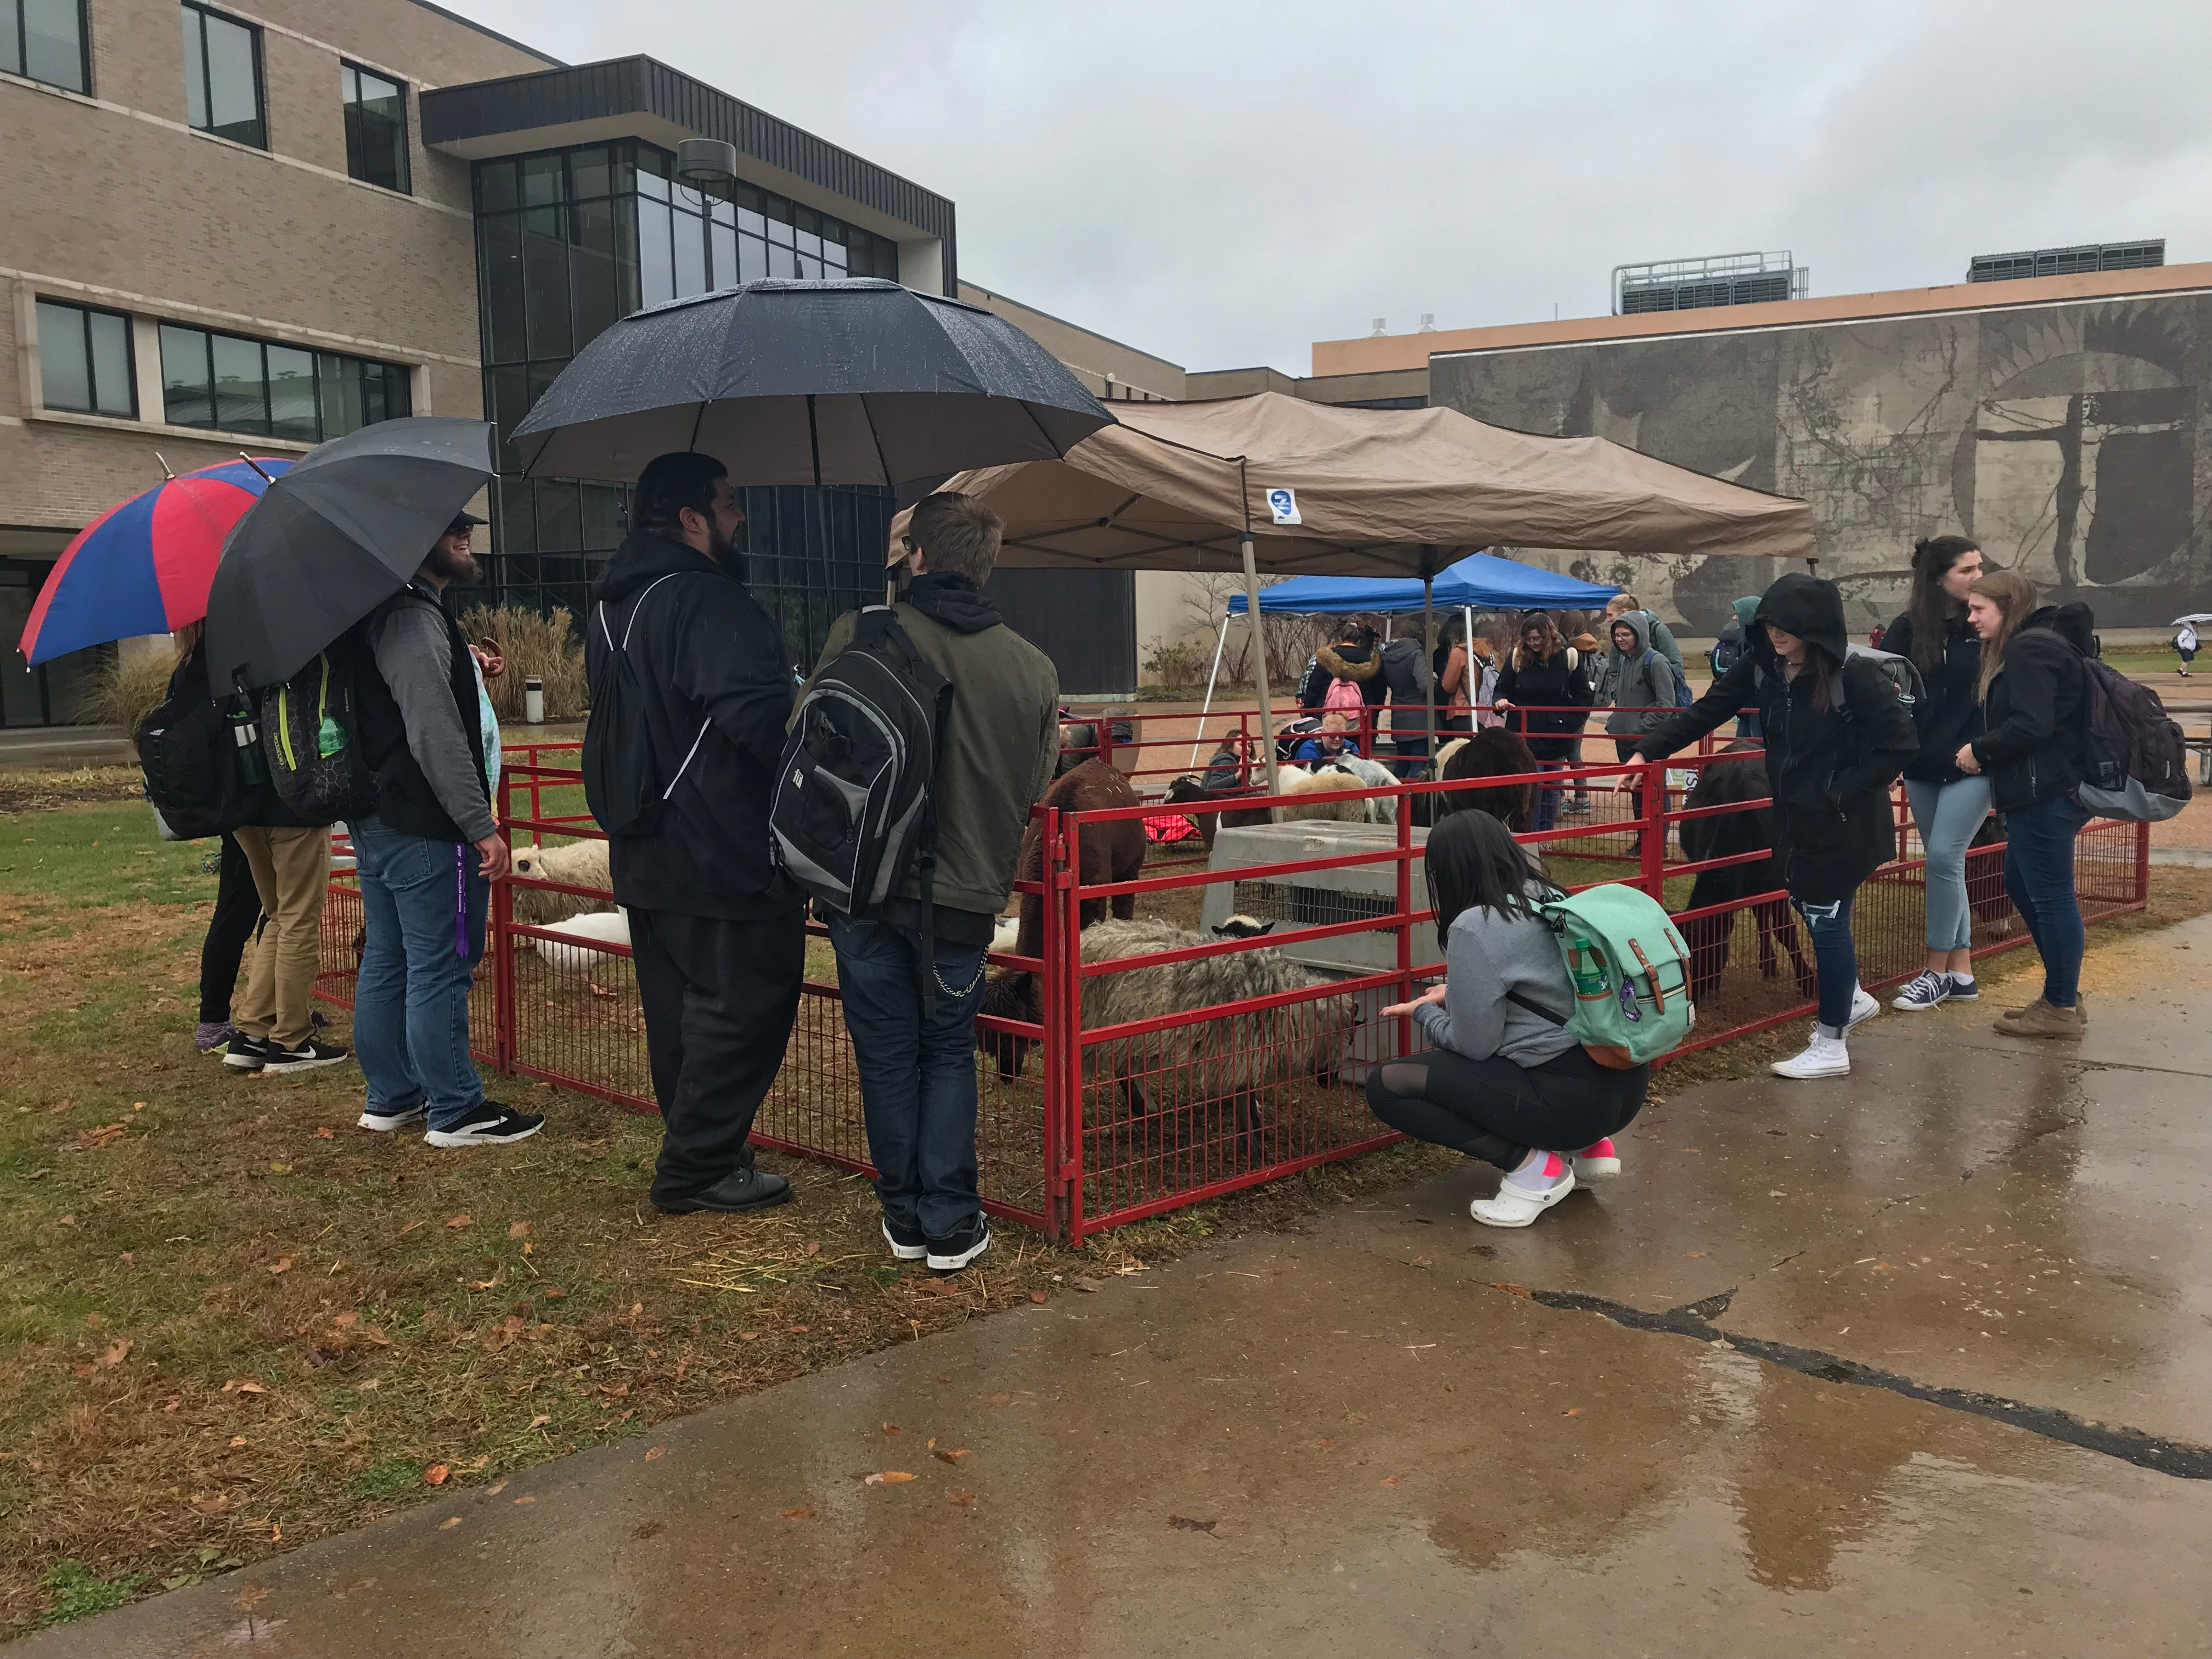 Groups of students gathered around a petting zoo set up at UWSP on Election Day.